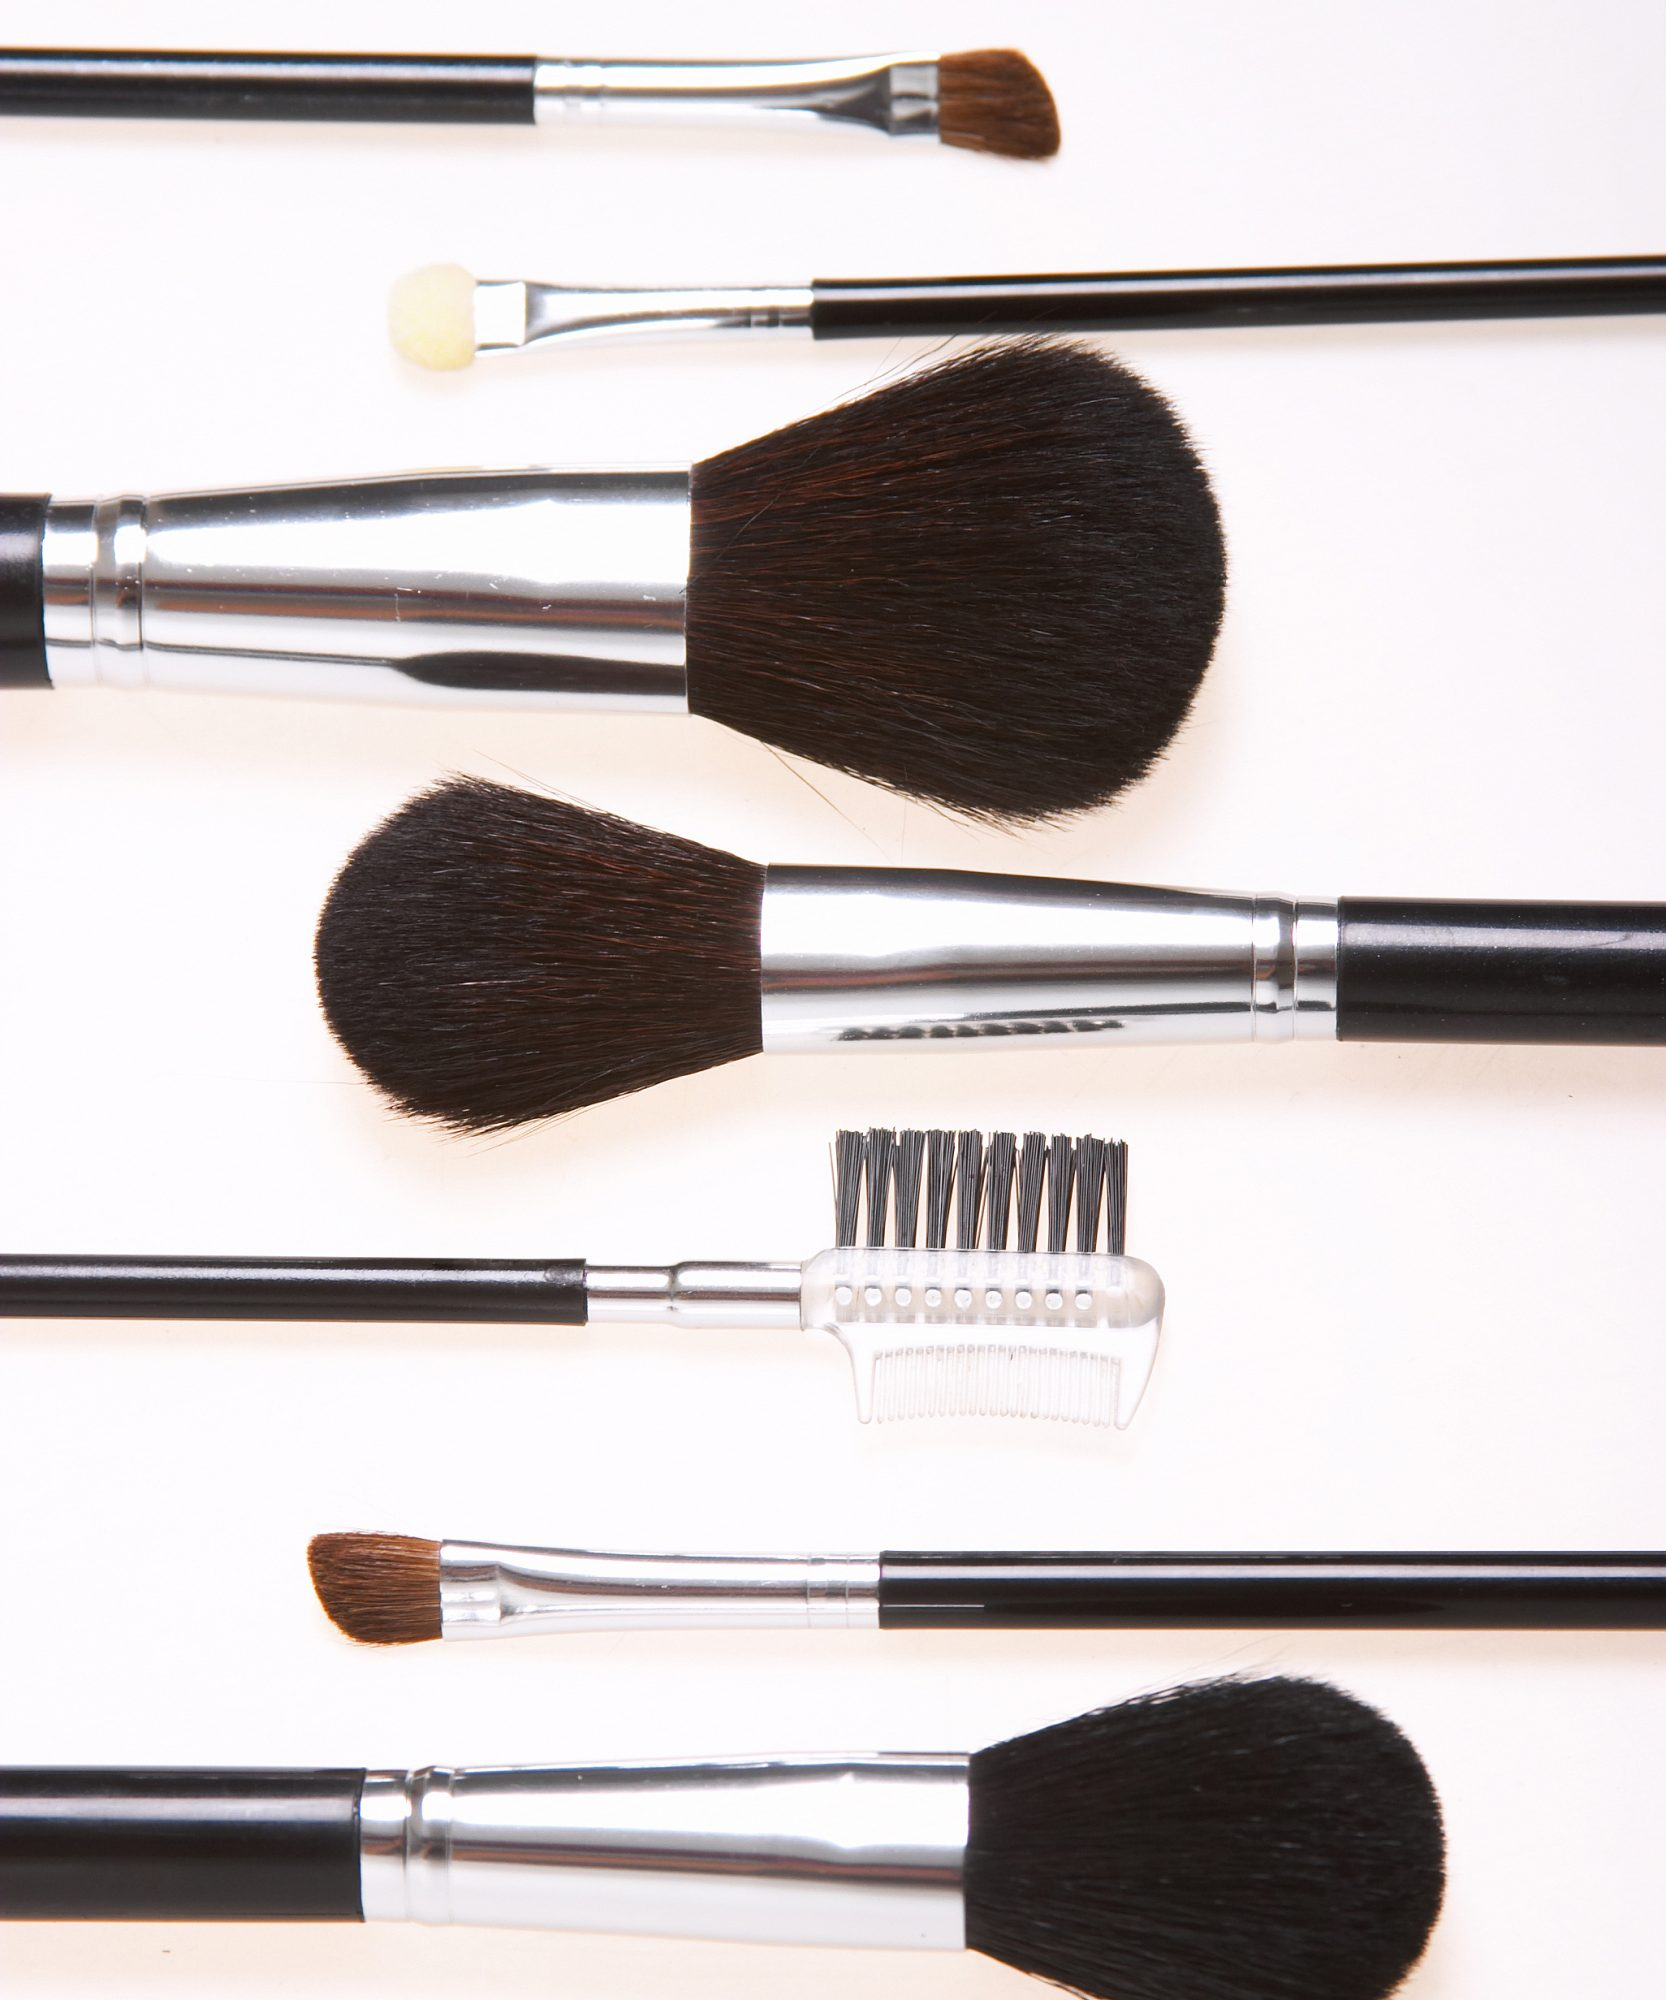 How to (Properly) Clean Your Makeup Brushes